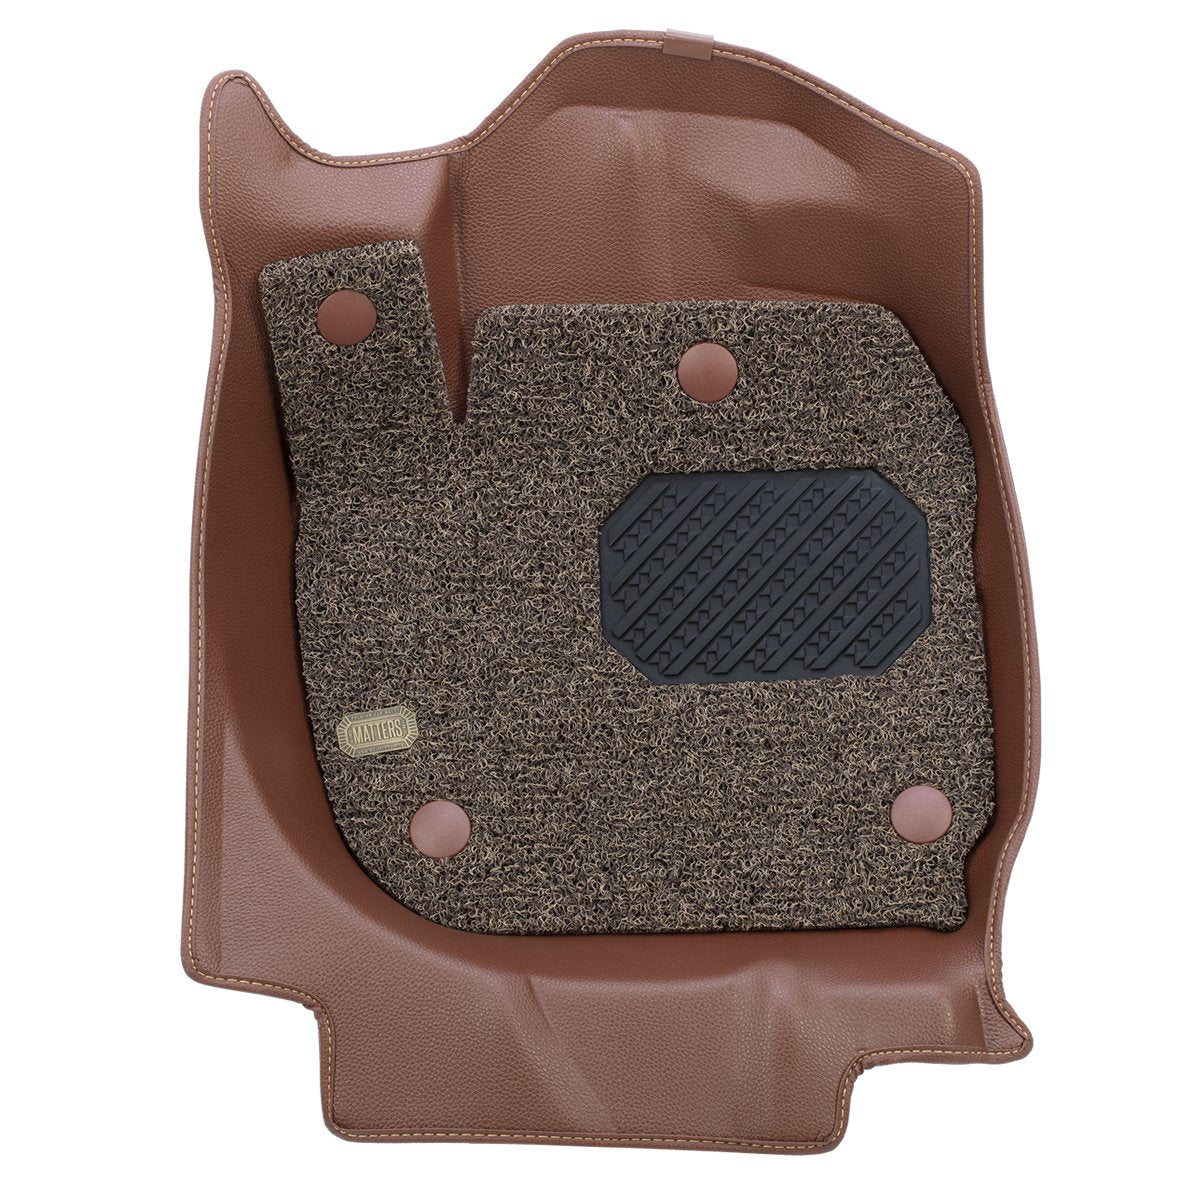 MATTERS 6D Car Mat - Subaru Forester (Brown) (SJ) (2012 - 2018)